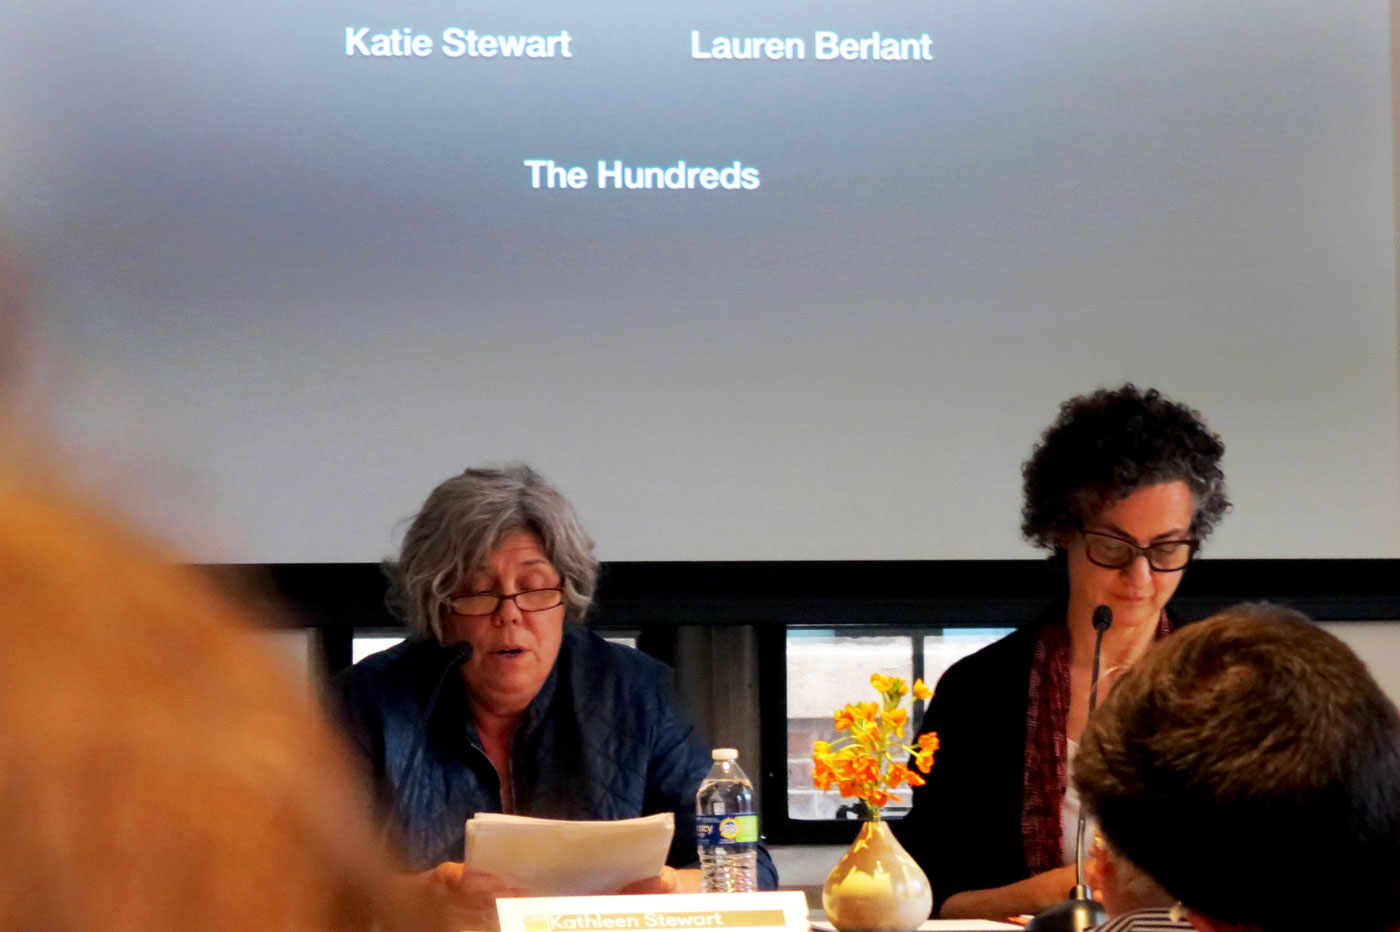 two people sit at a table speaking with presentation projected behind them